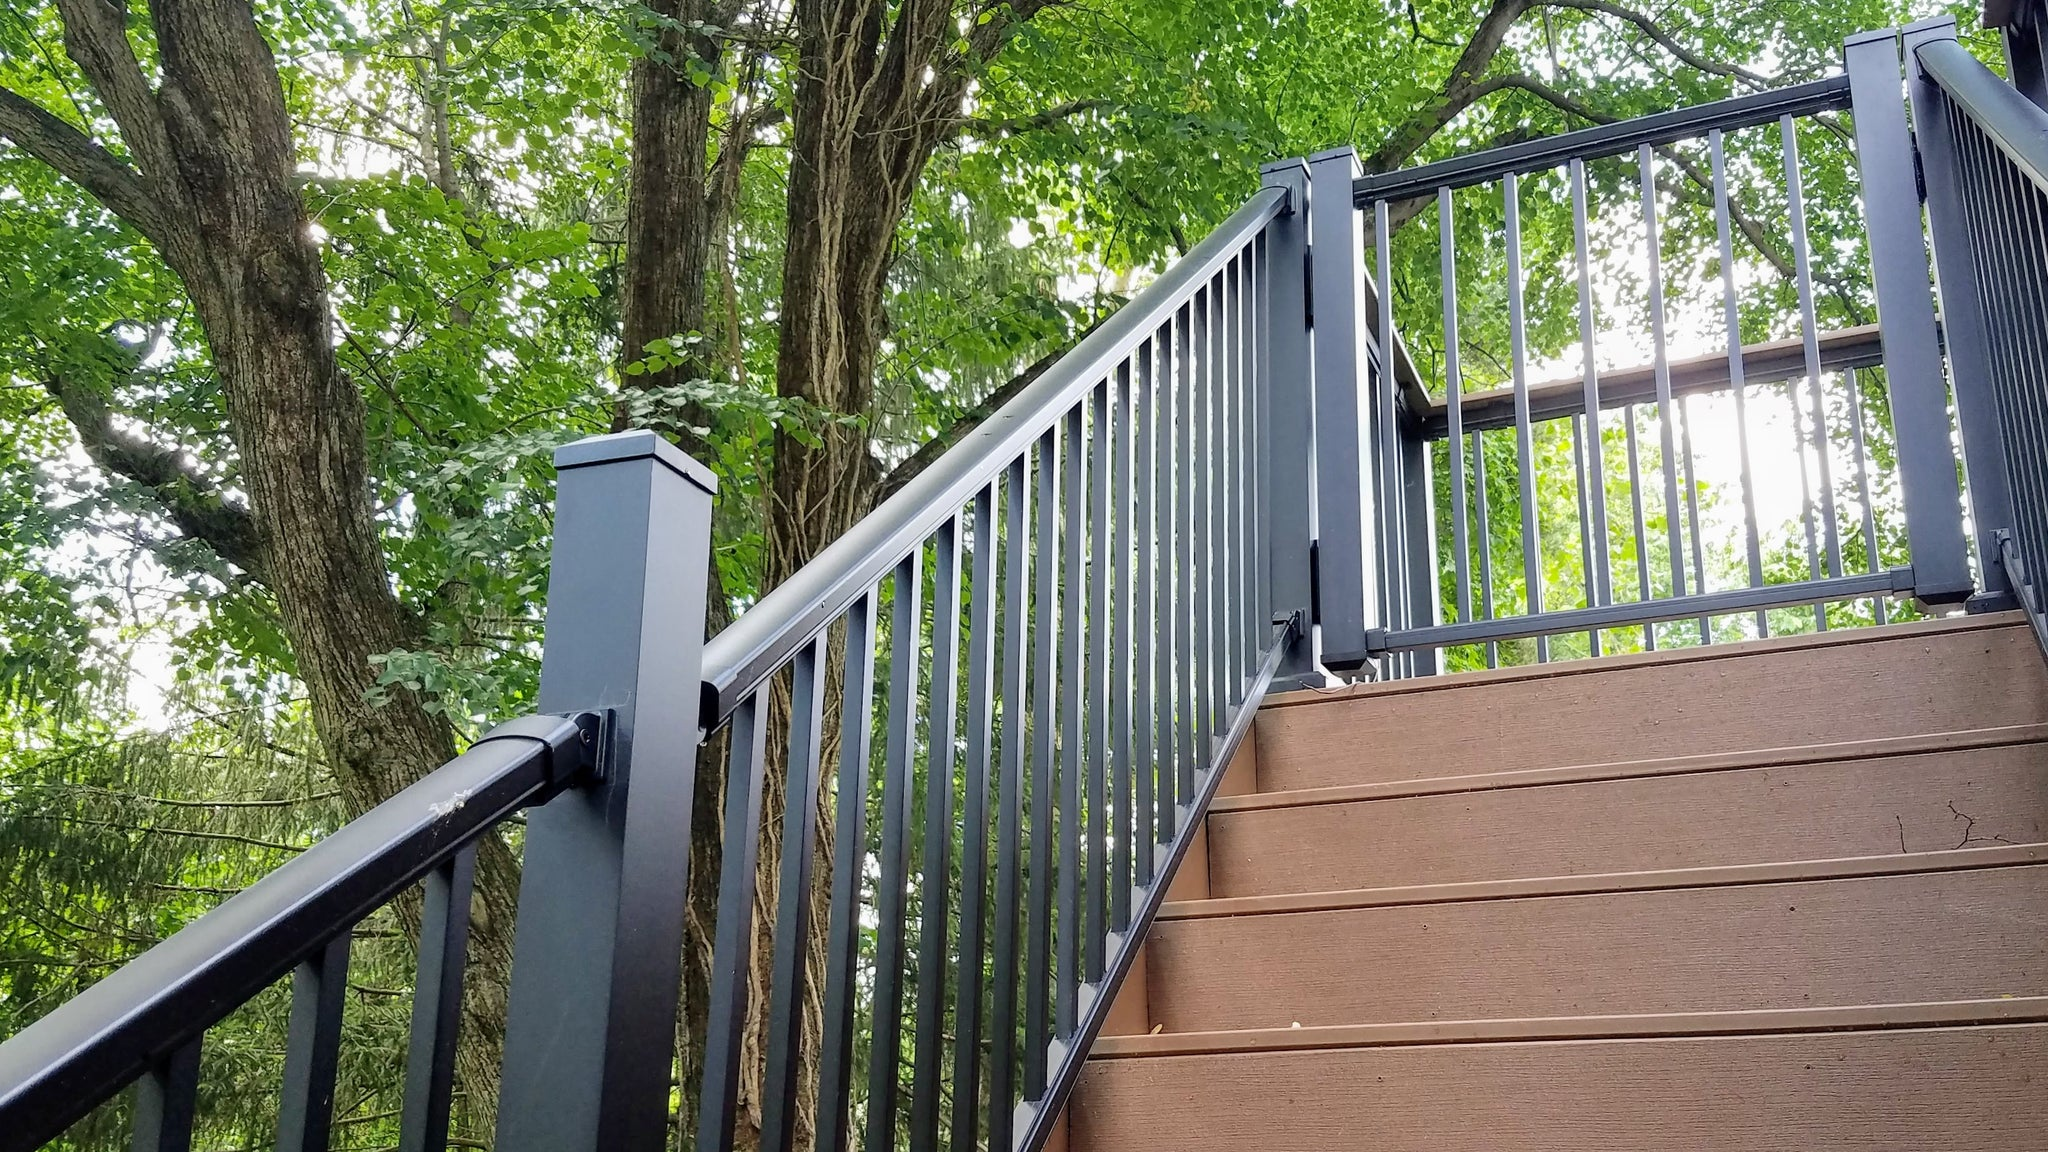 DekPros Prestige Railing Kits in Stair Application Level Application and Gate Shown, Gate Sold Seperately